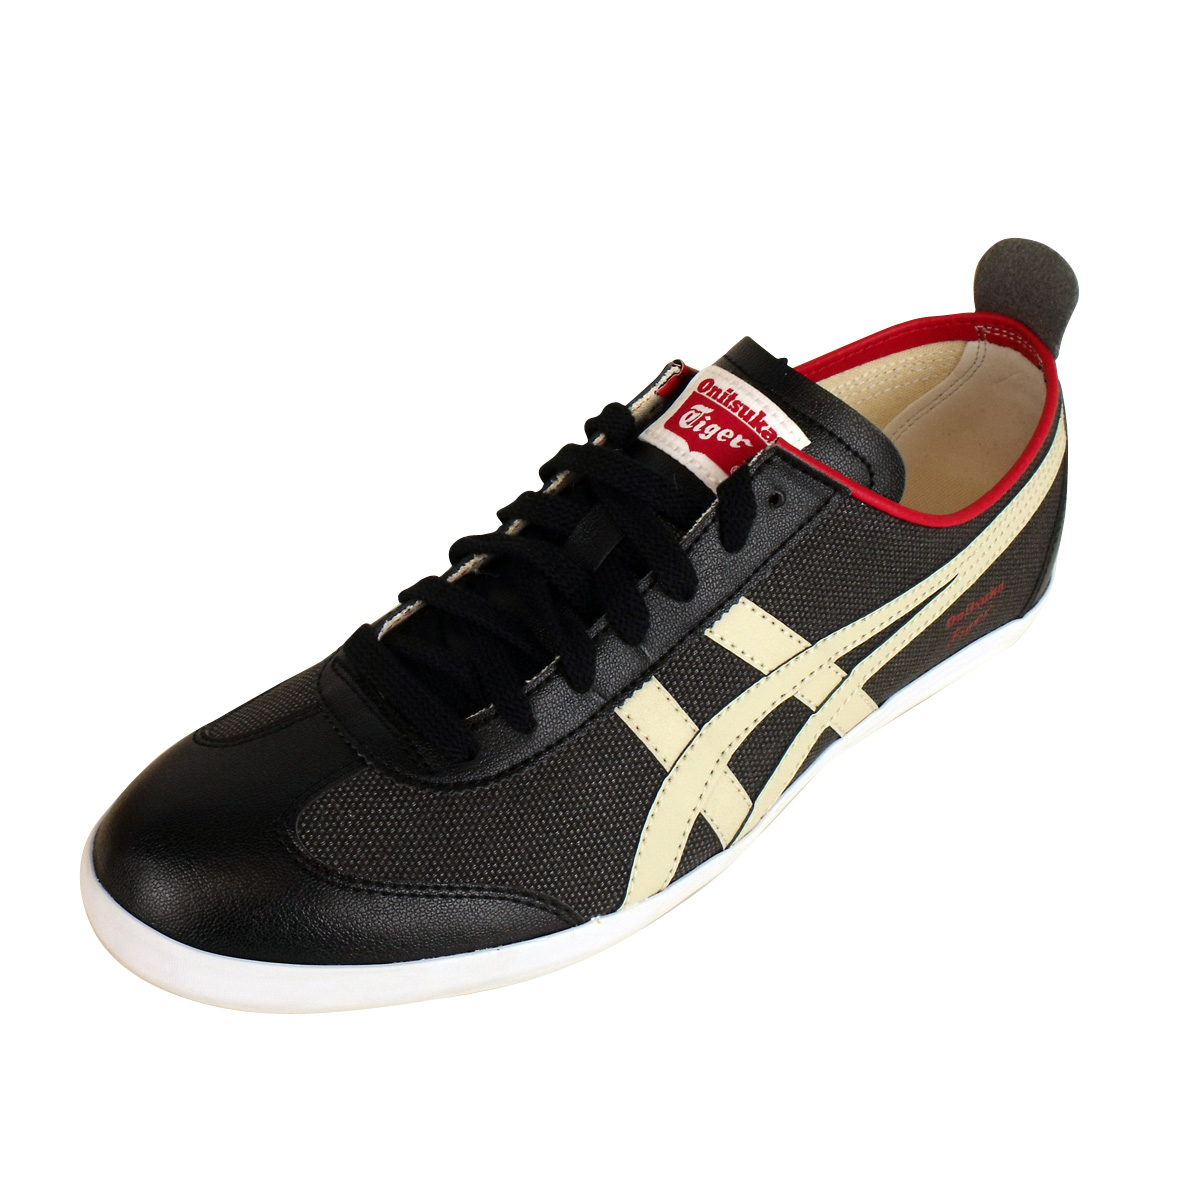 mens asics onitsuka tiger mexico 66 trainers shoes retro. Black Bedroom Furniture Sets. Home Design Ideas